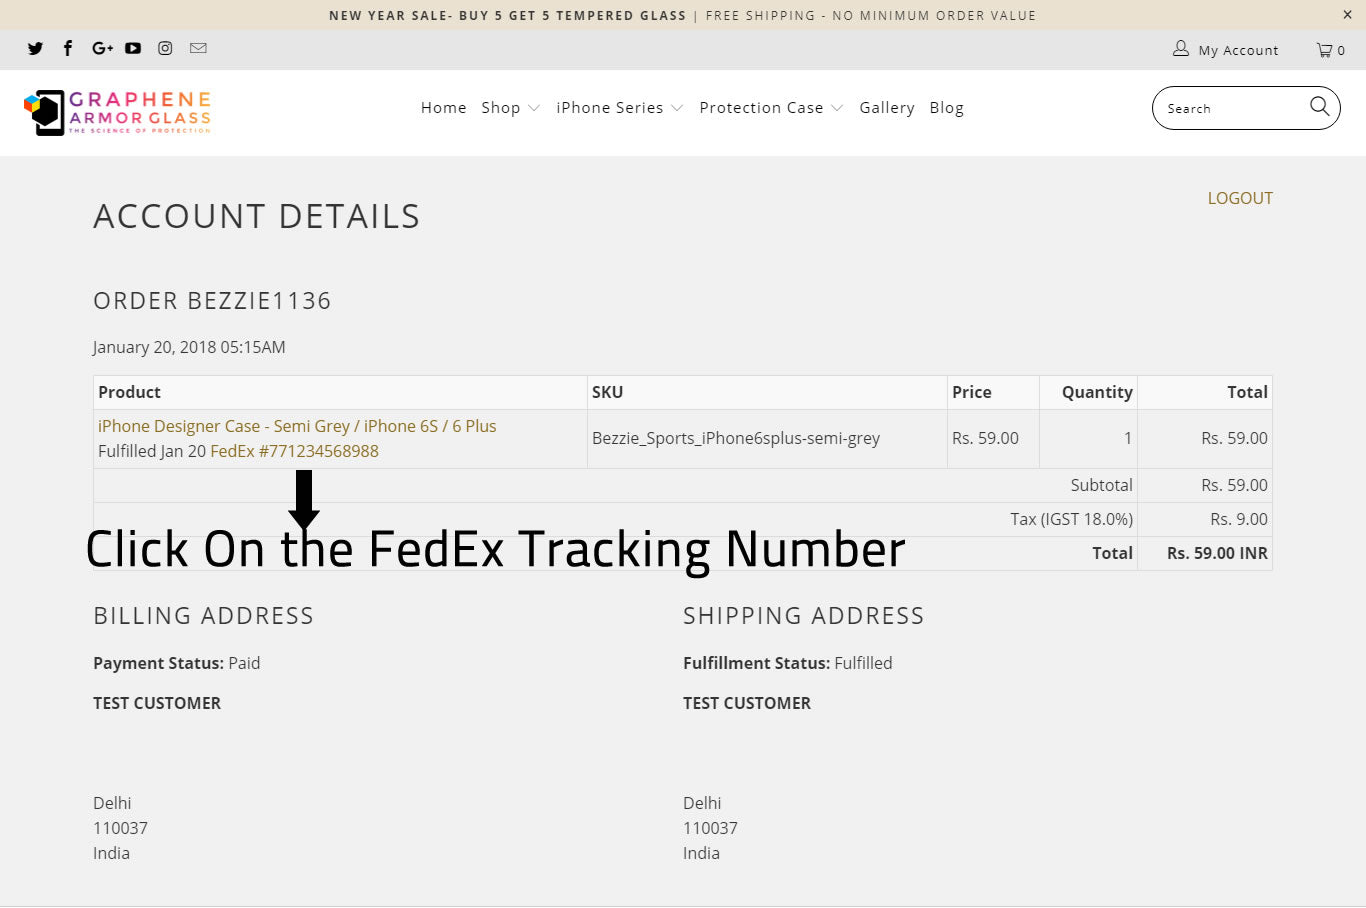 How to track my order online